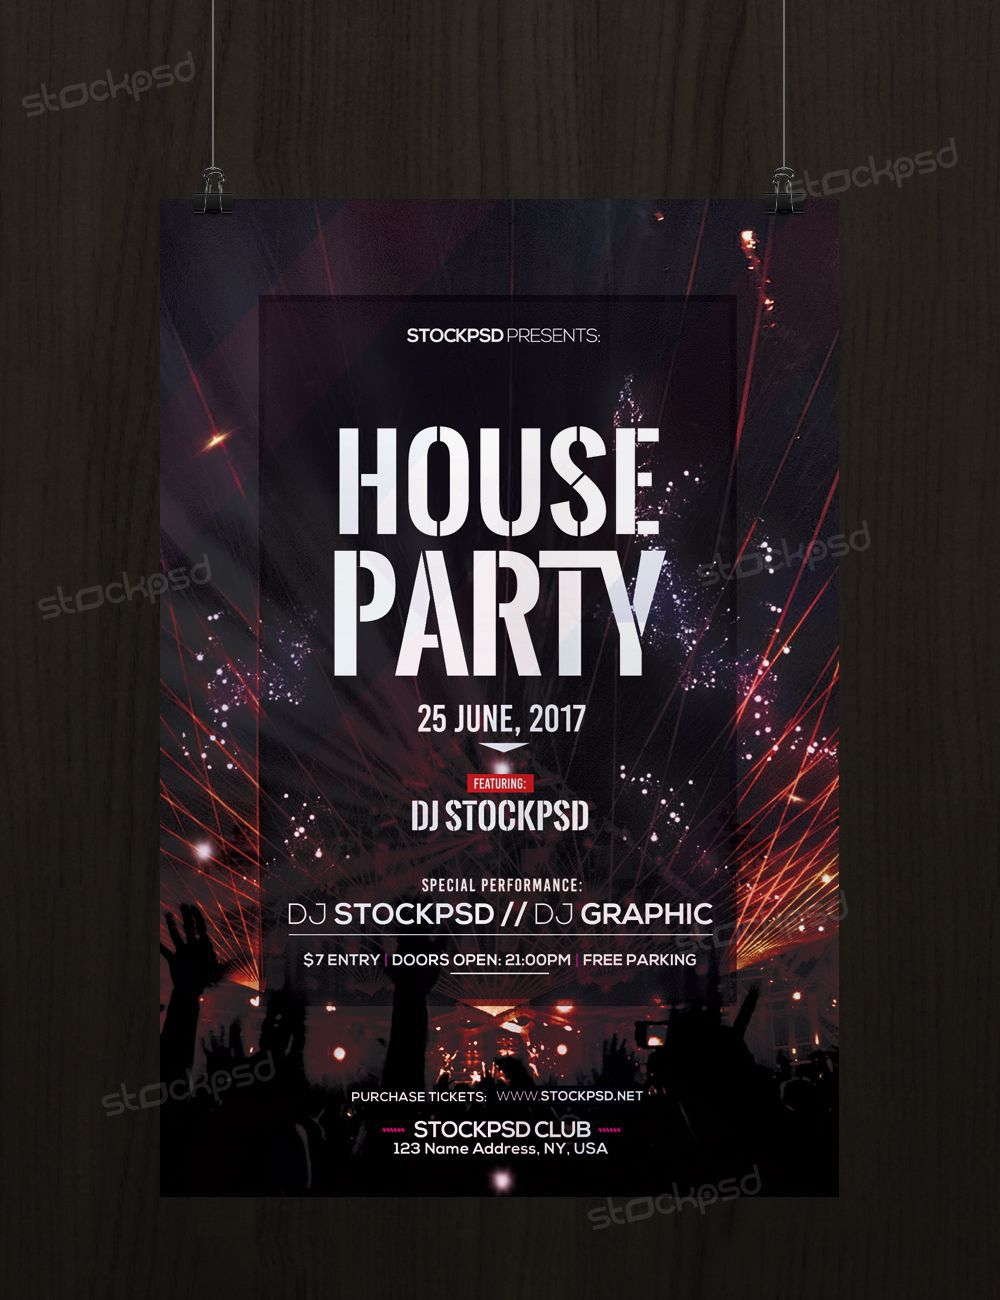 002 Shocking Party Flyer Template Free Picture  50th Birthday Invite Graduation PsdFull